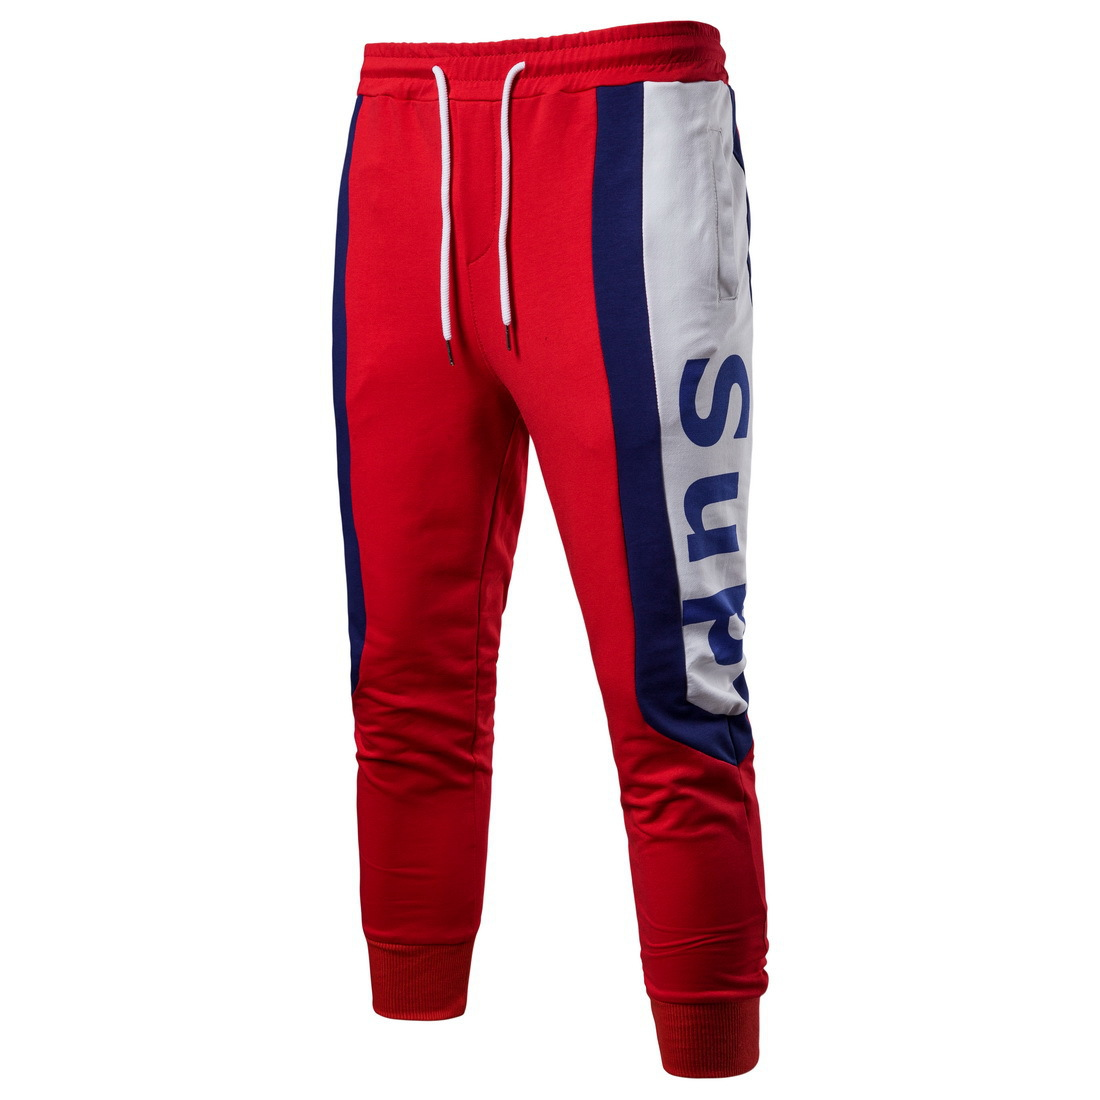 2019 Spring New Style Foreign Trade Large Size Men'S Wear-Style Fashion-Casual Sports Pants Contrast Color Printed Trousers YK00